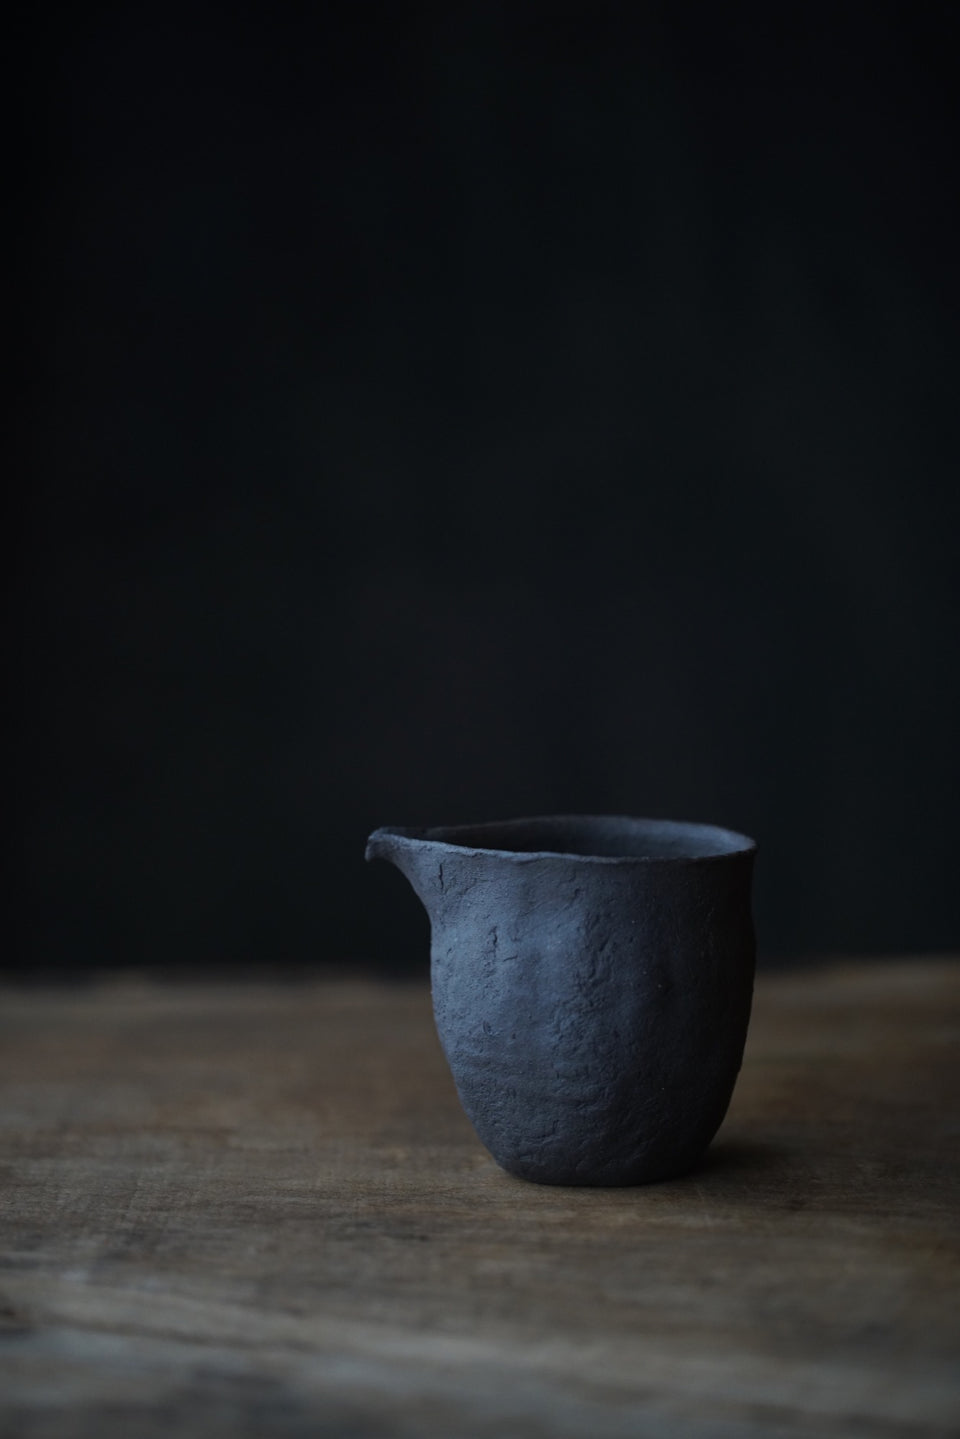 Dark Clay Gongdaobei Share Cup Pitcher (Chen Wei)